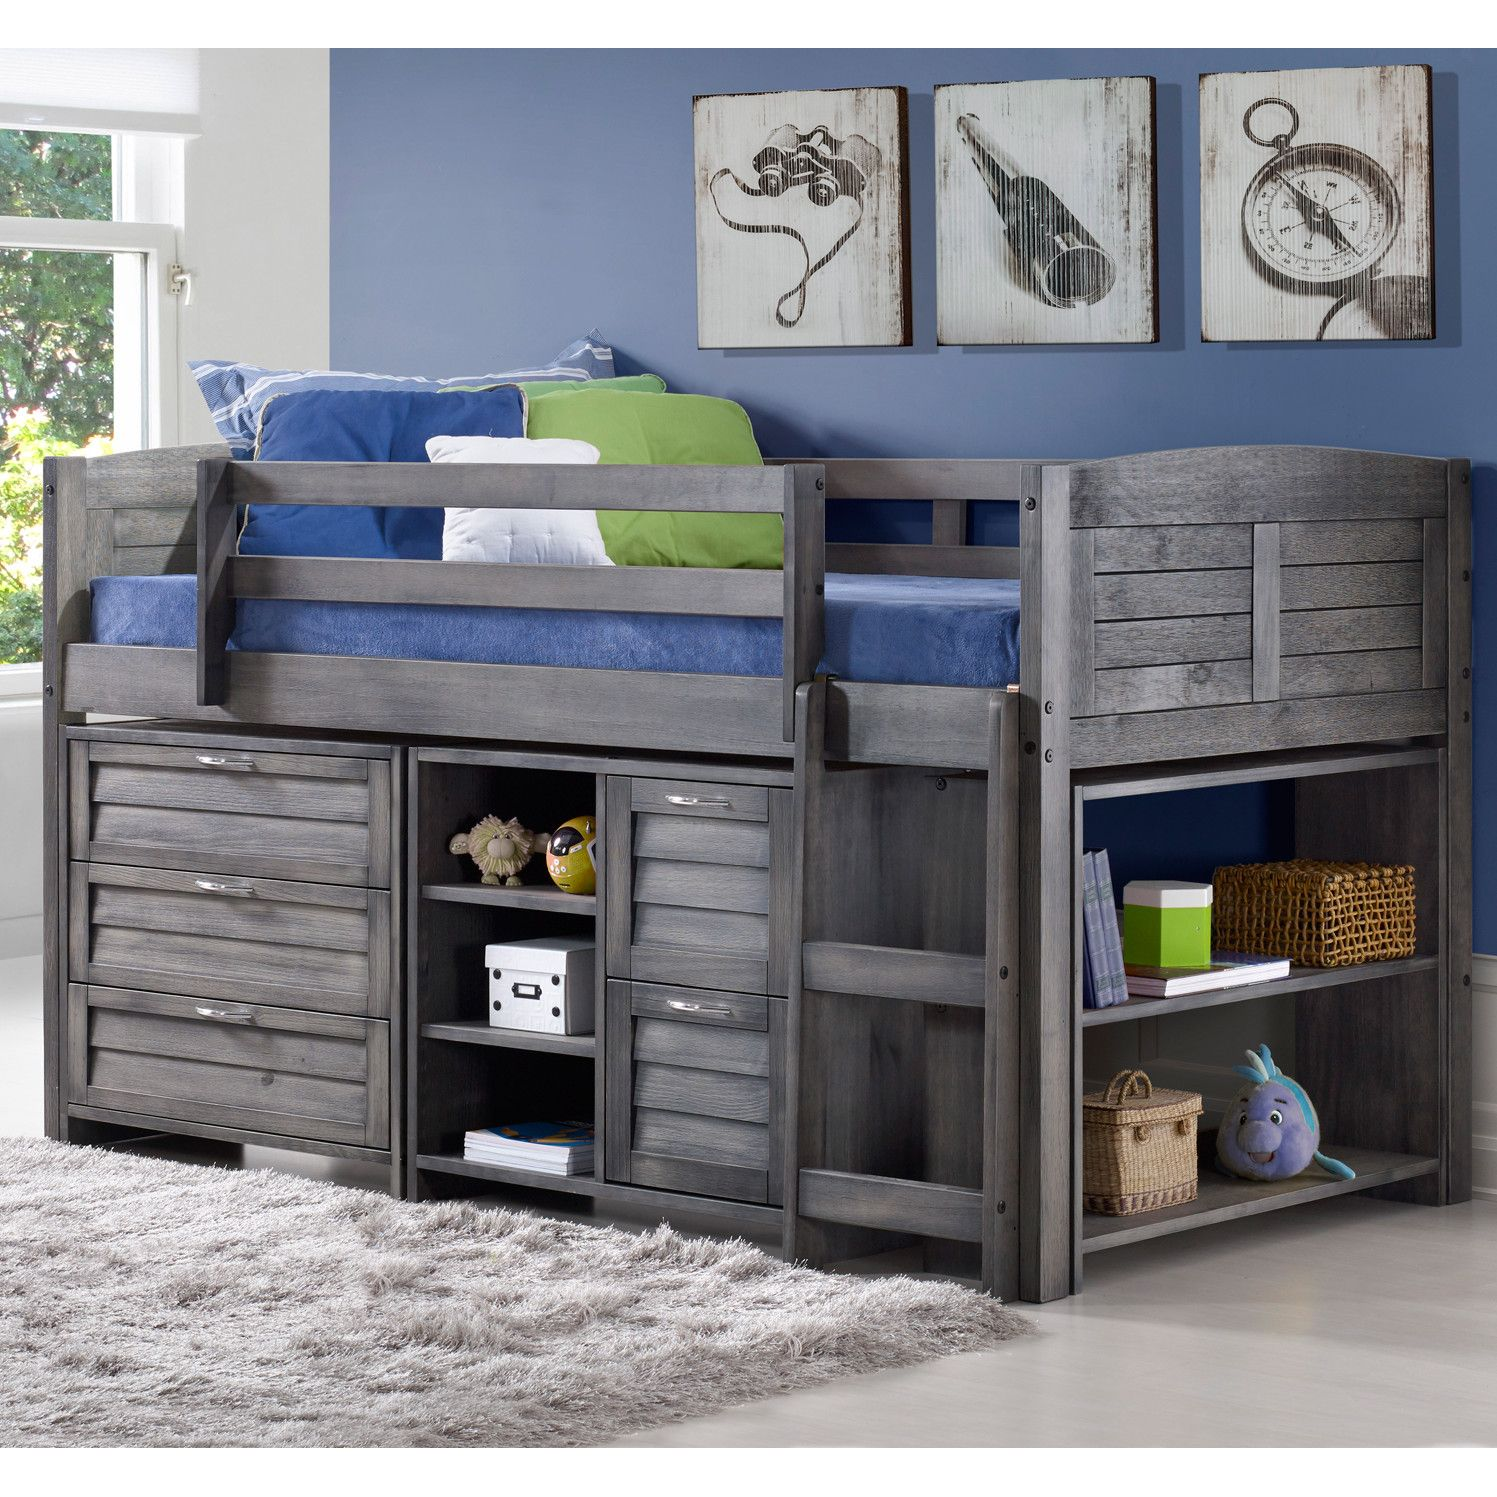 Loft bed storage ideas  Donco Kids Louver Twin Low Loft Slat Bed with Bookcase and Chest